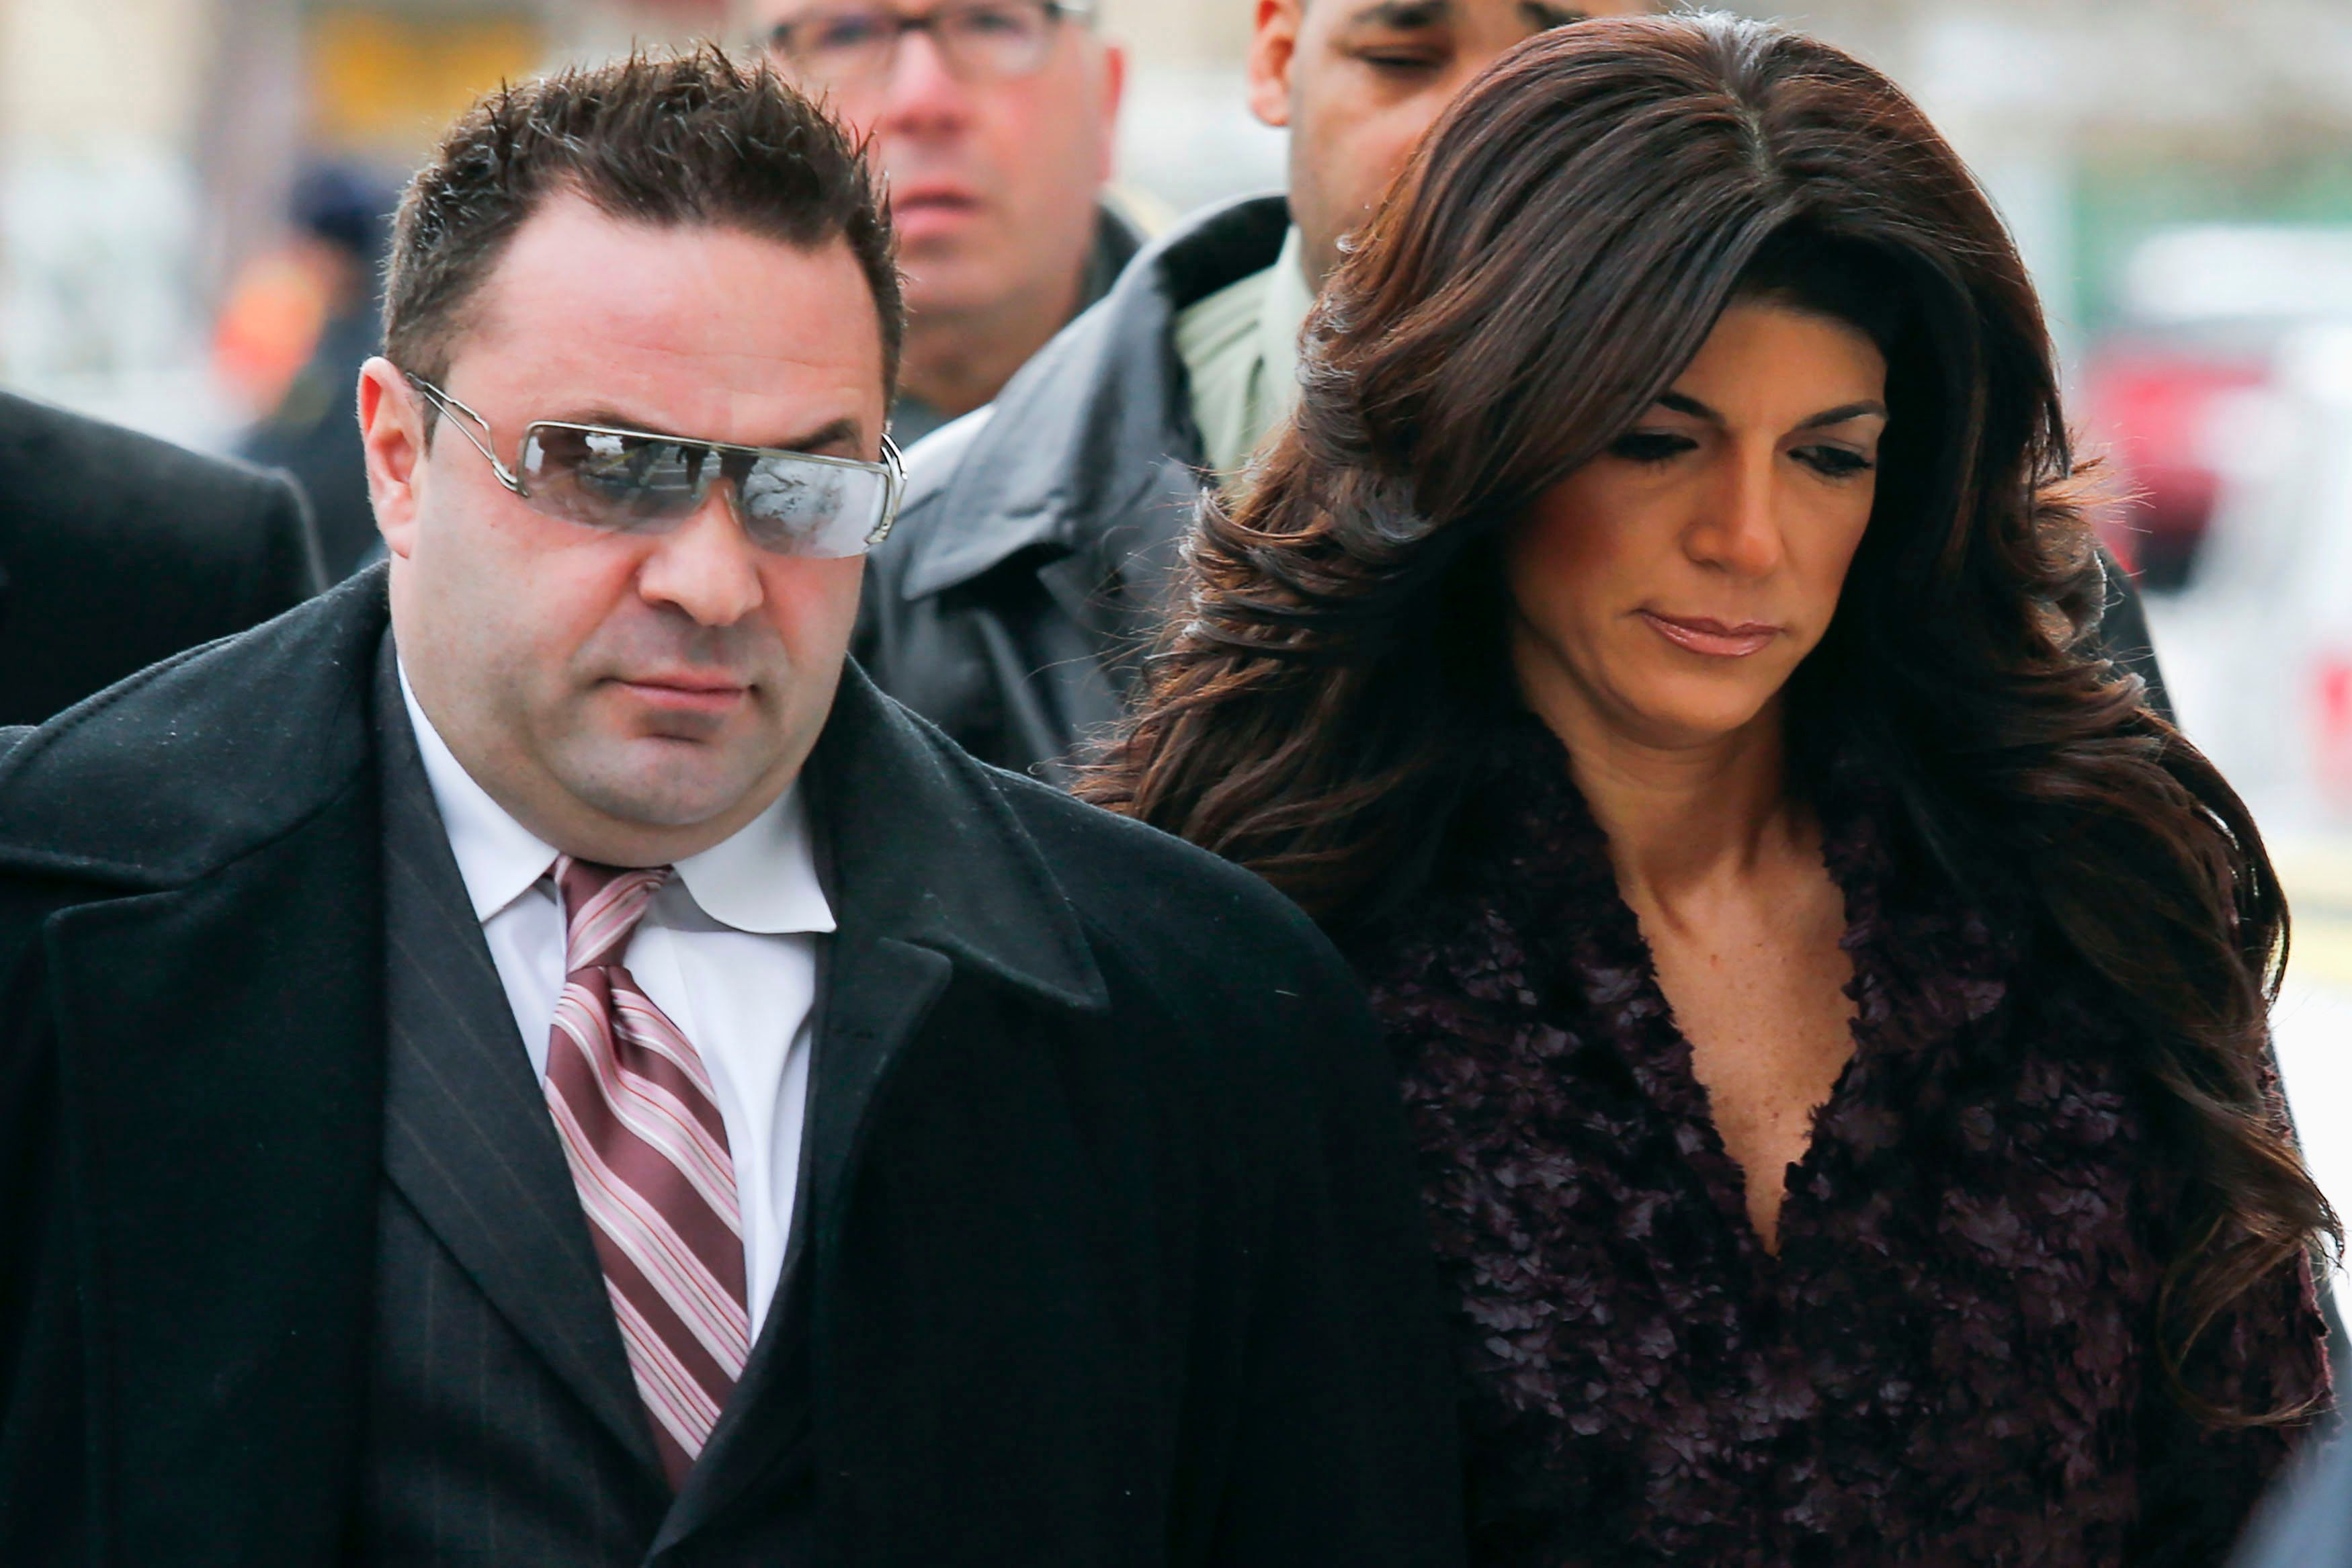 'Real Housewives' Star Joe Giudice To Be Deported After Prison Time